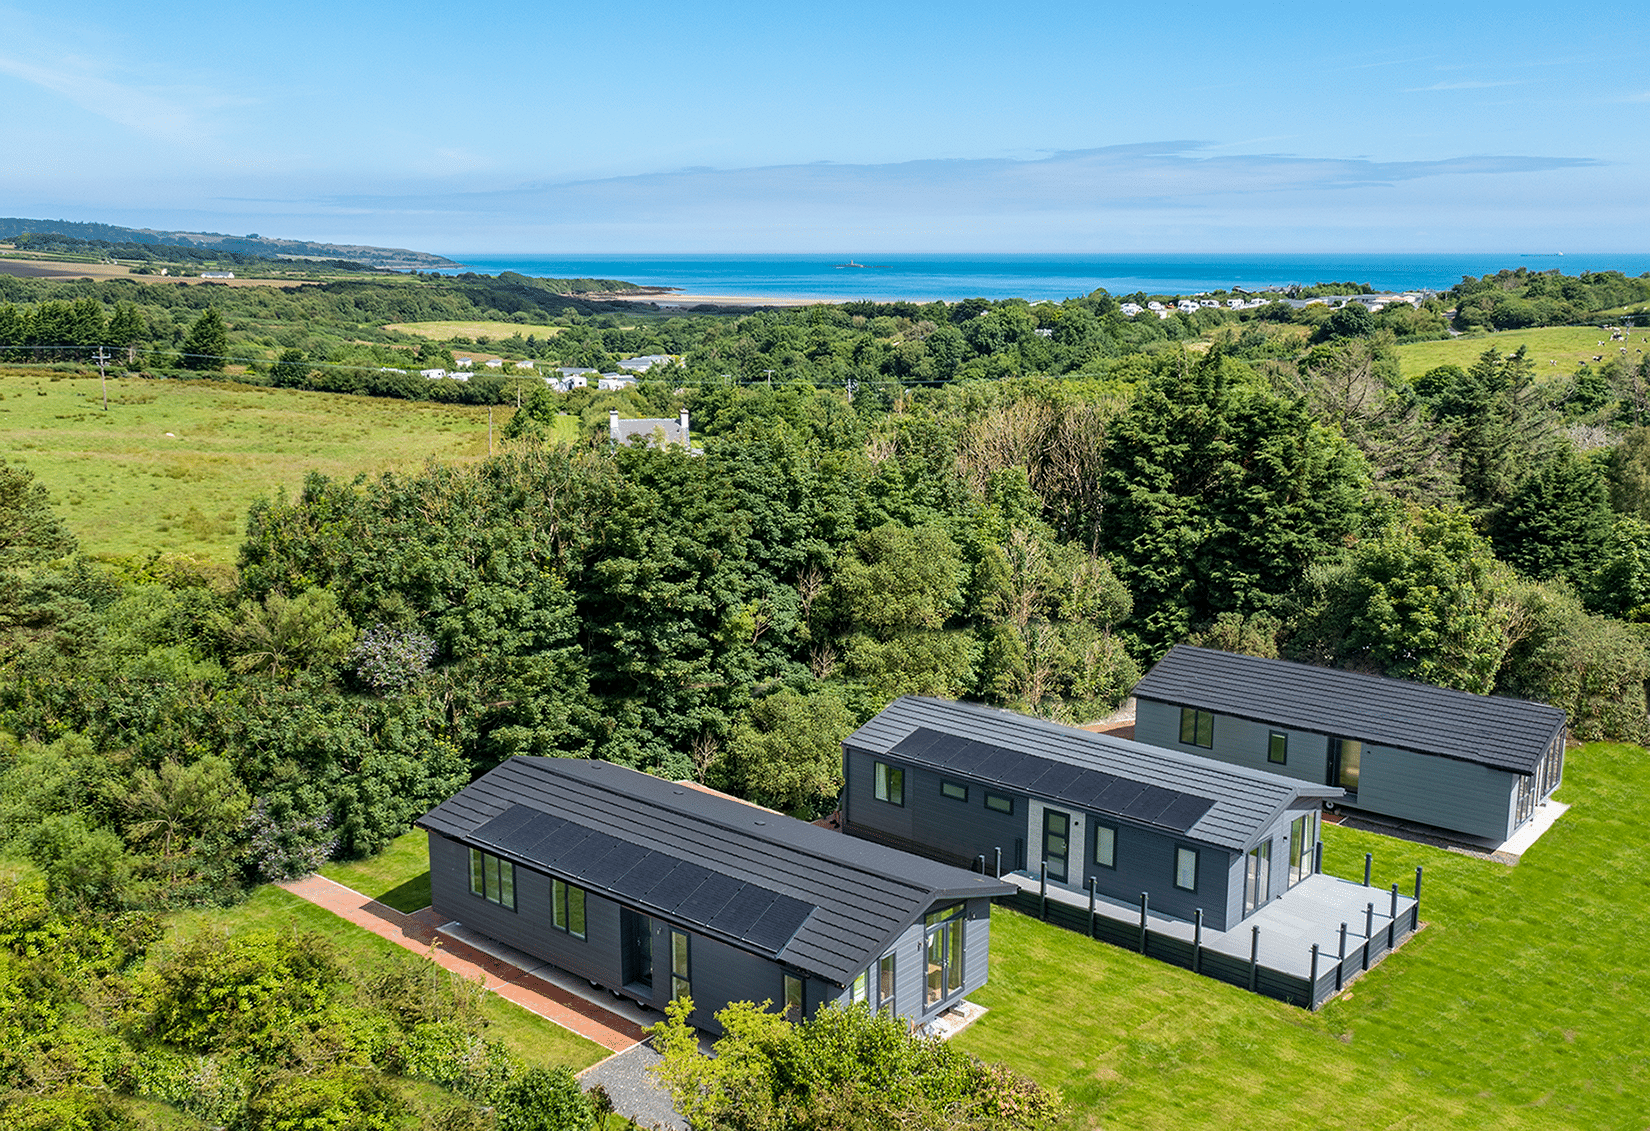 https://silverbay.co.uk/wp-content/uploads/2021/07/DJI_0027-HDR-lodge-with-sea.png